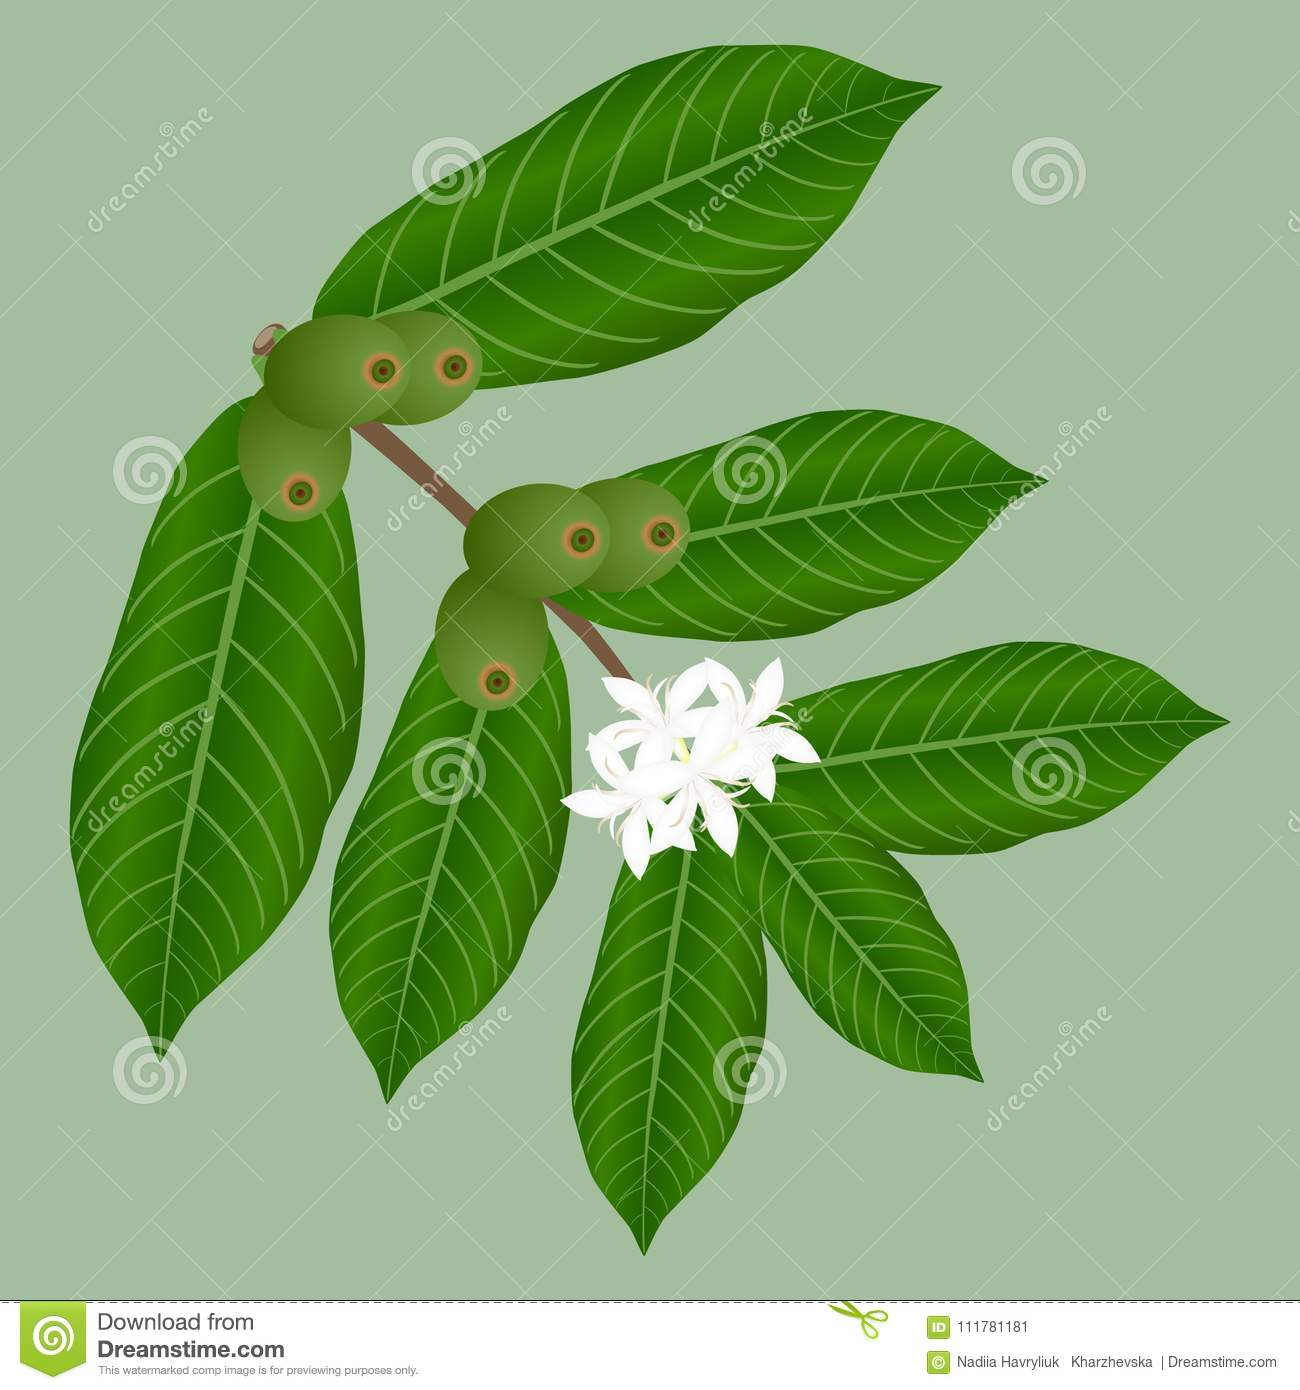 Coffee branch with white flowers and green berries.